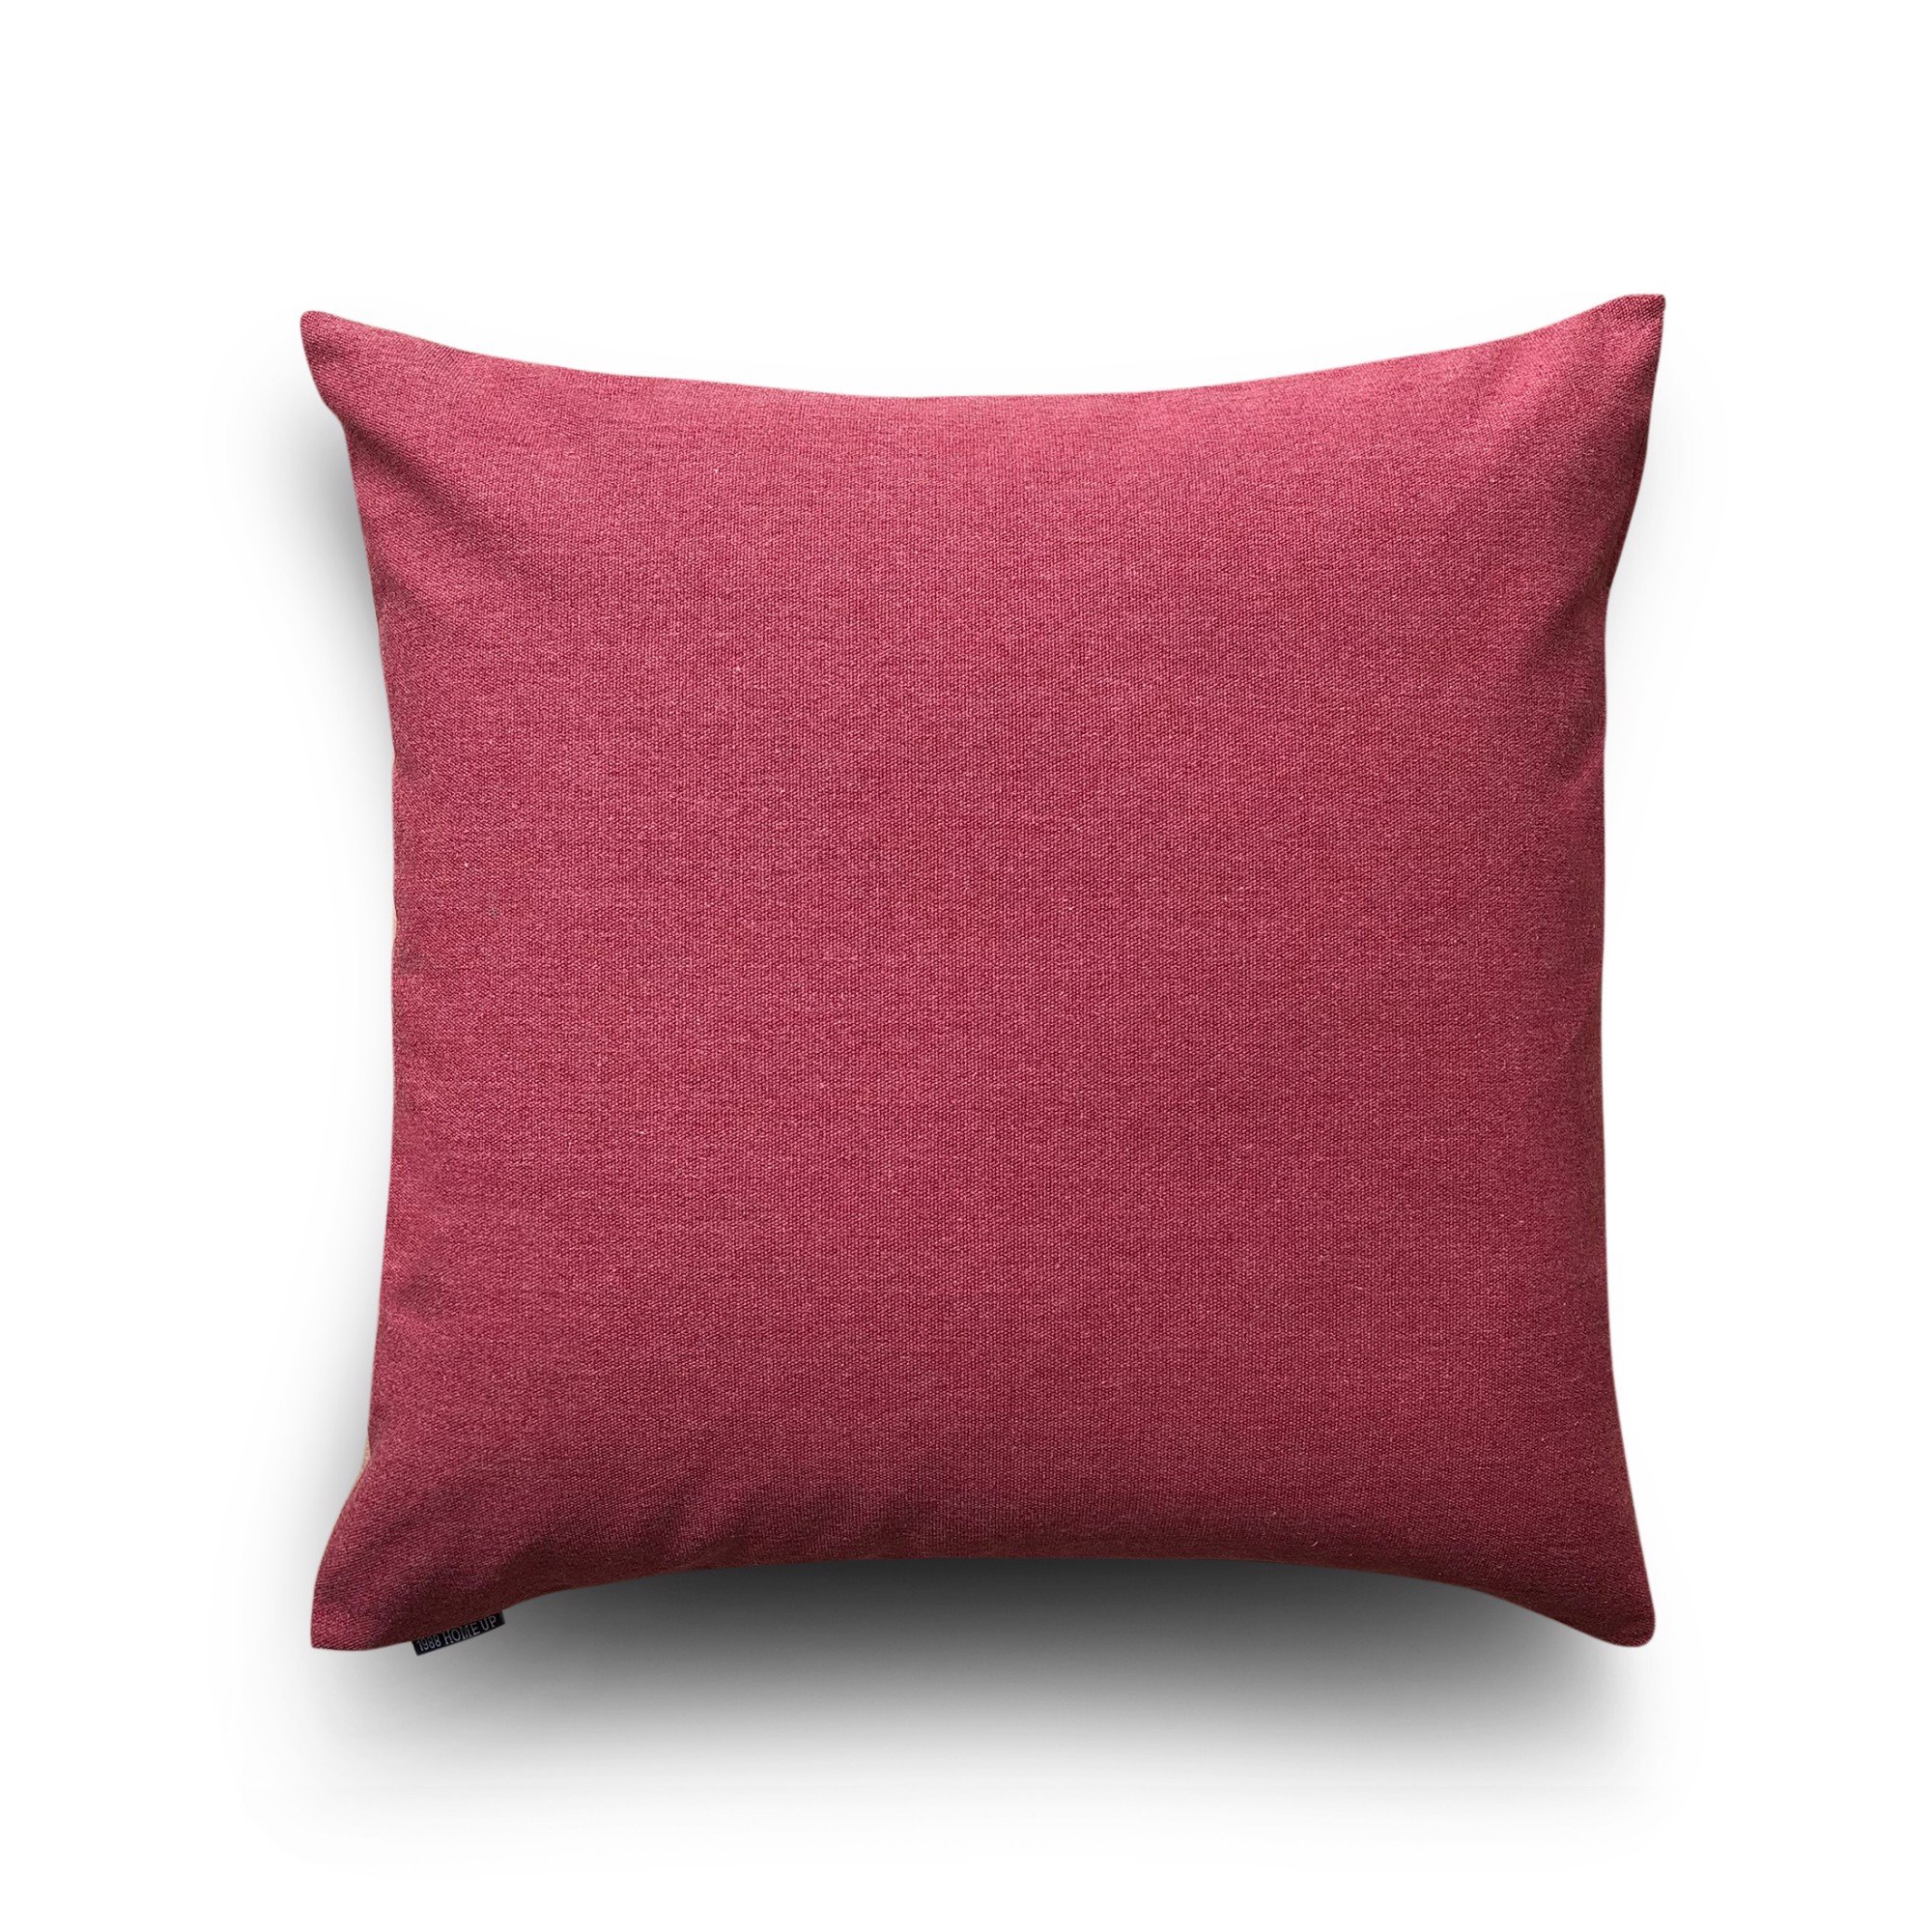 Cushion cover 01 Cardinal red